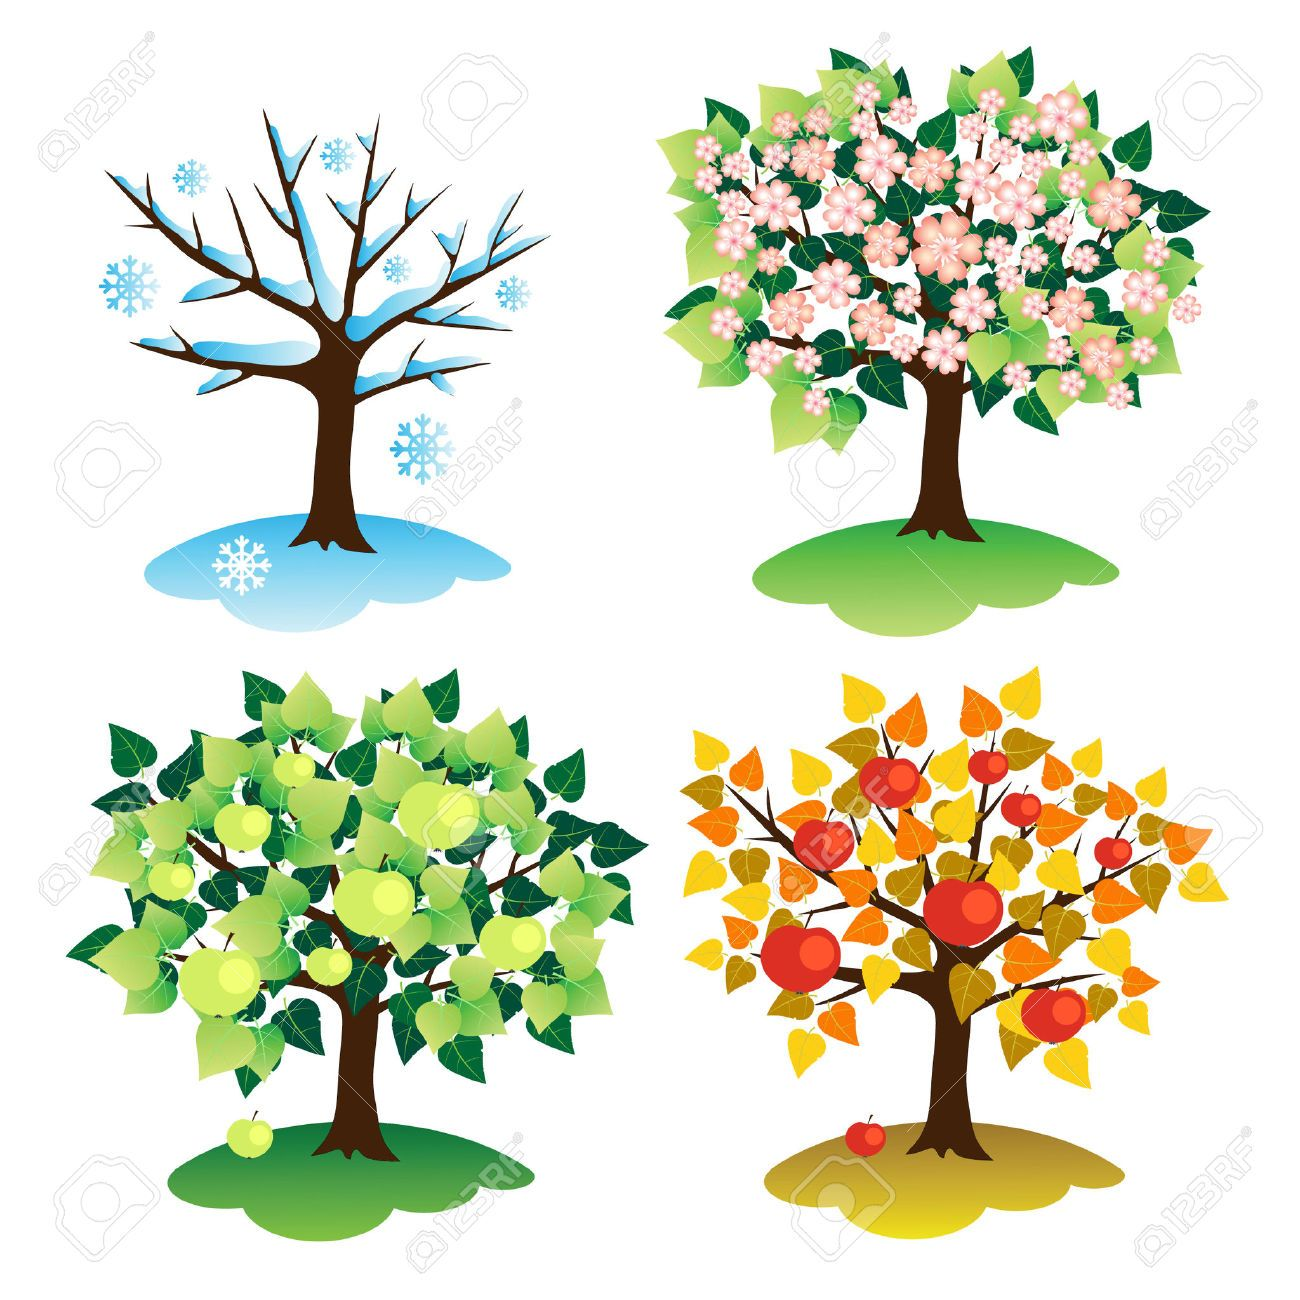 The four seasons clipart banner royalty free 4 seasons clipart 1 » Clipart Station banner royalty free